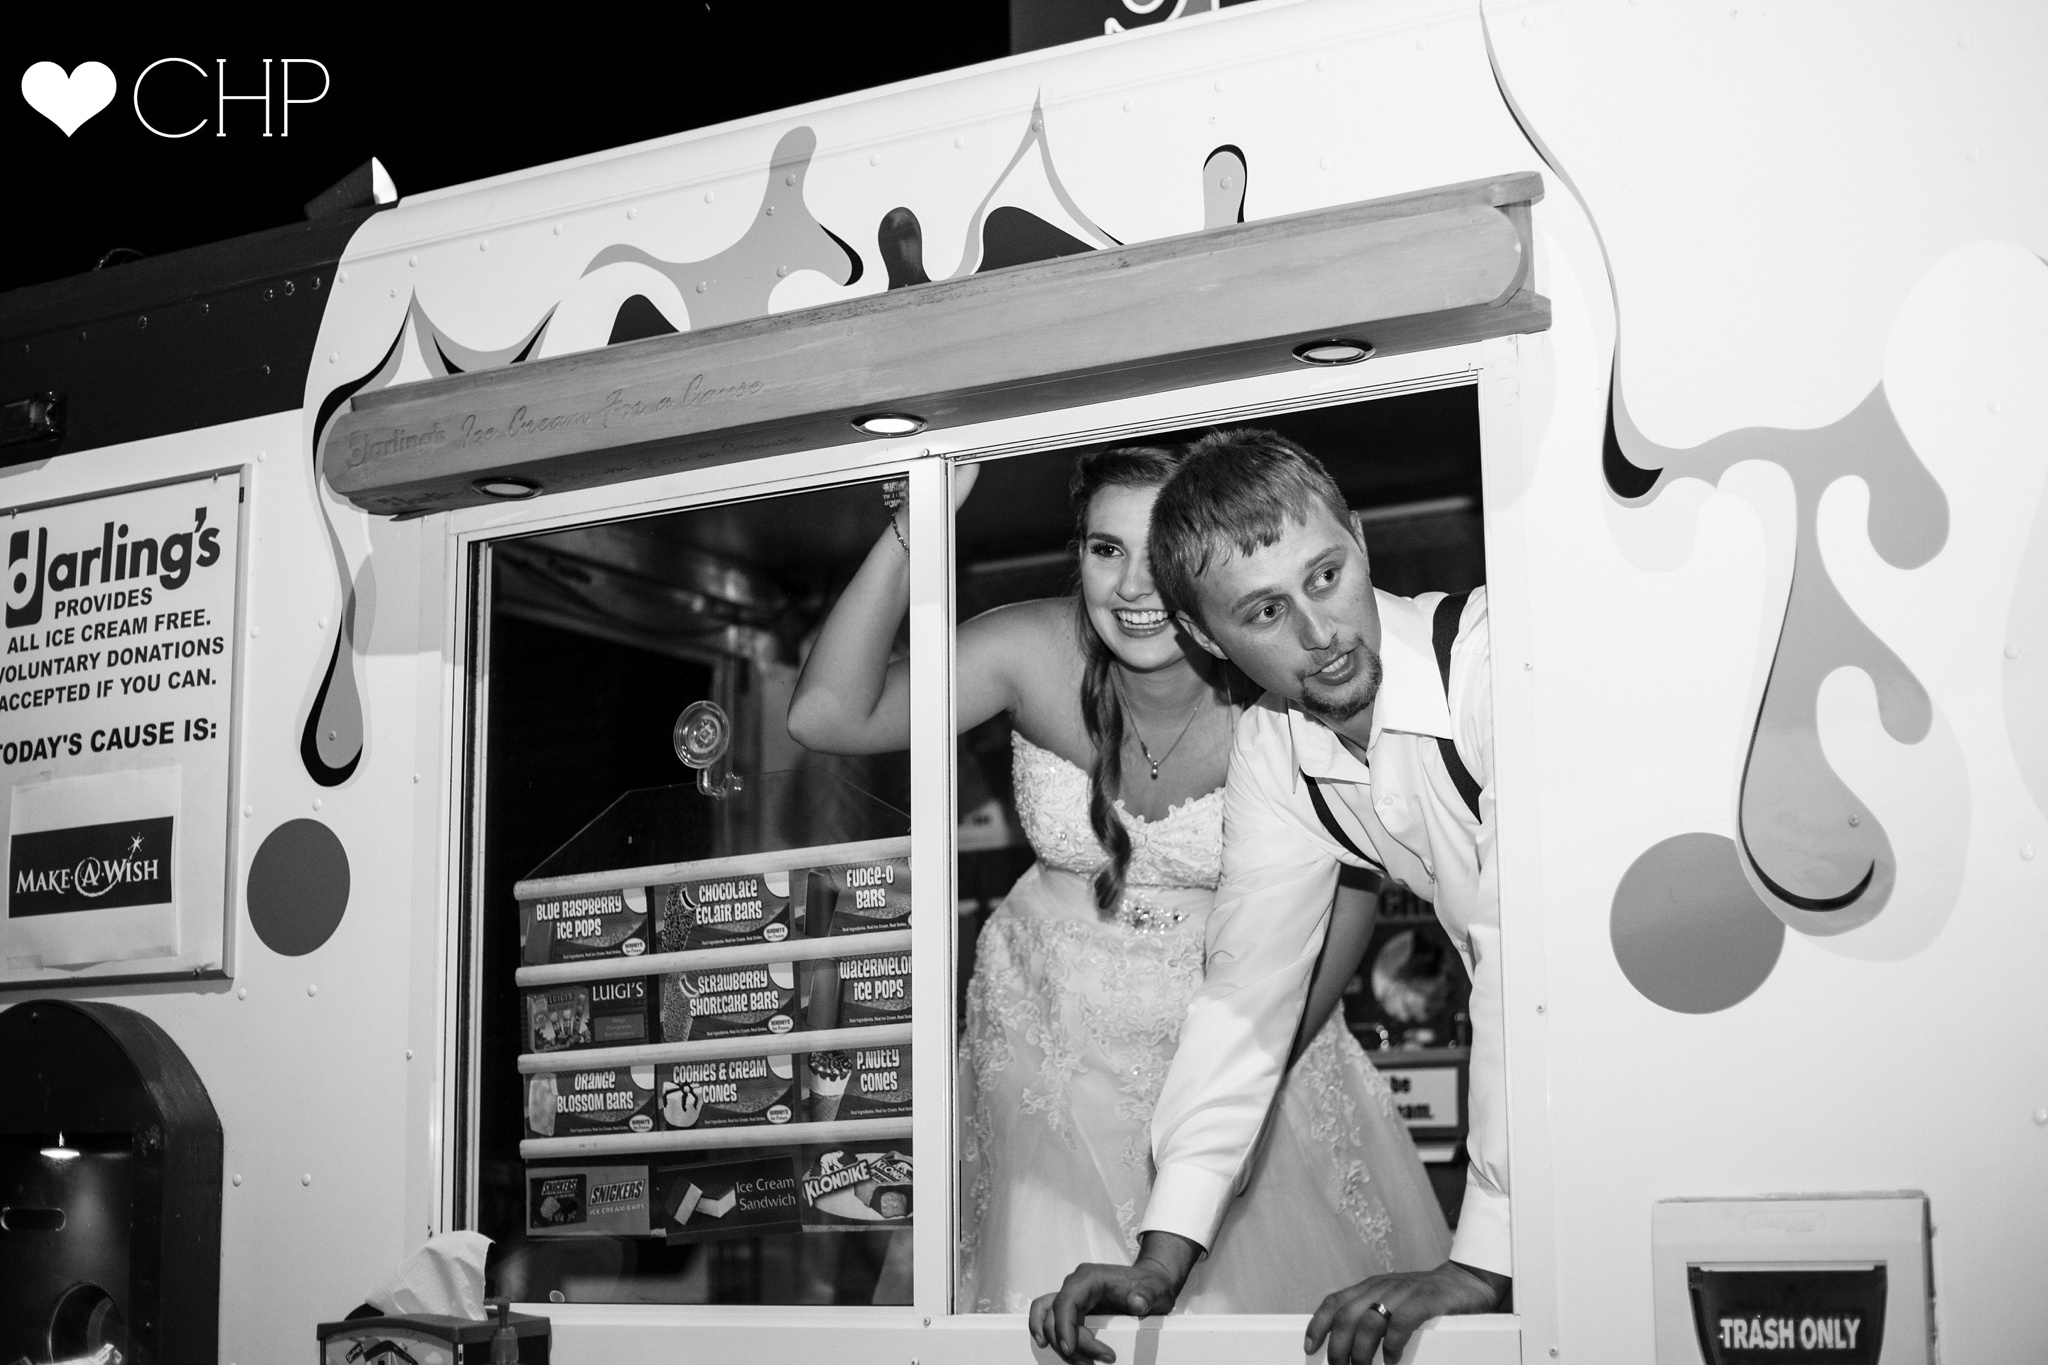 Darlings ice cream truck at a wedding